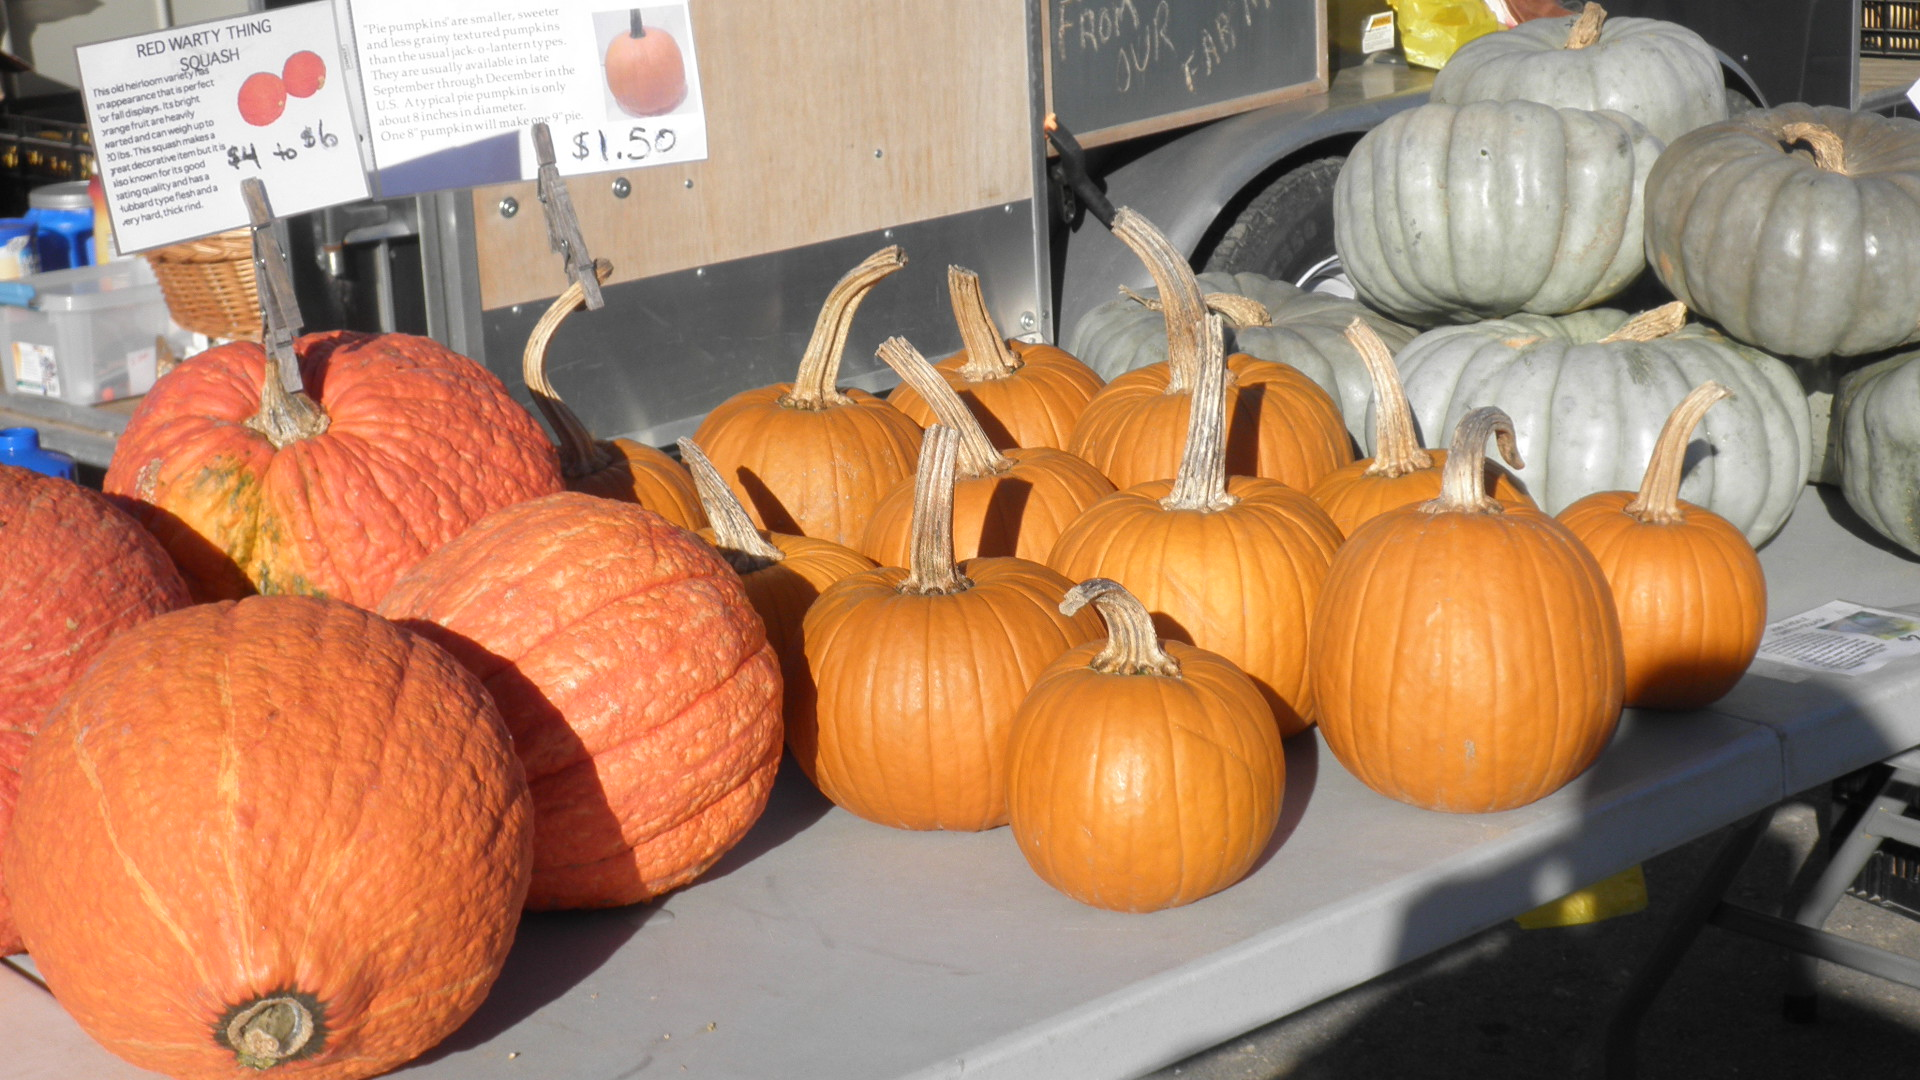 Pumpkins and squash on a table at the farmer's market.